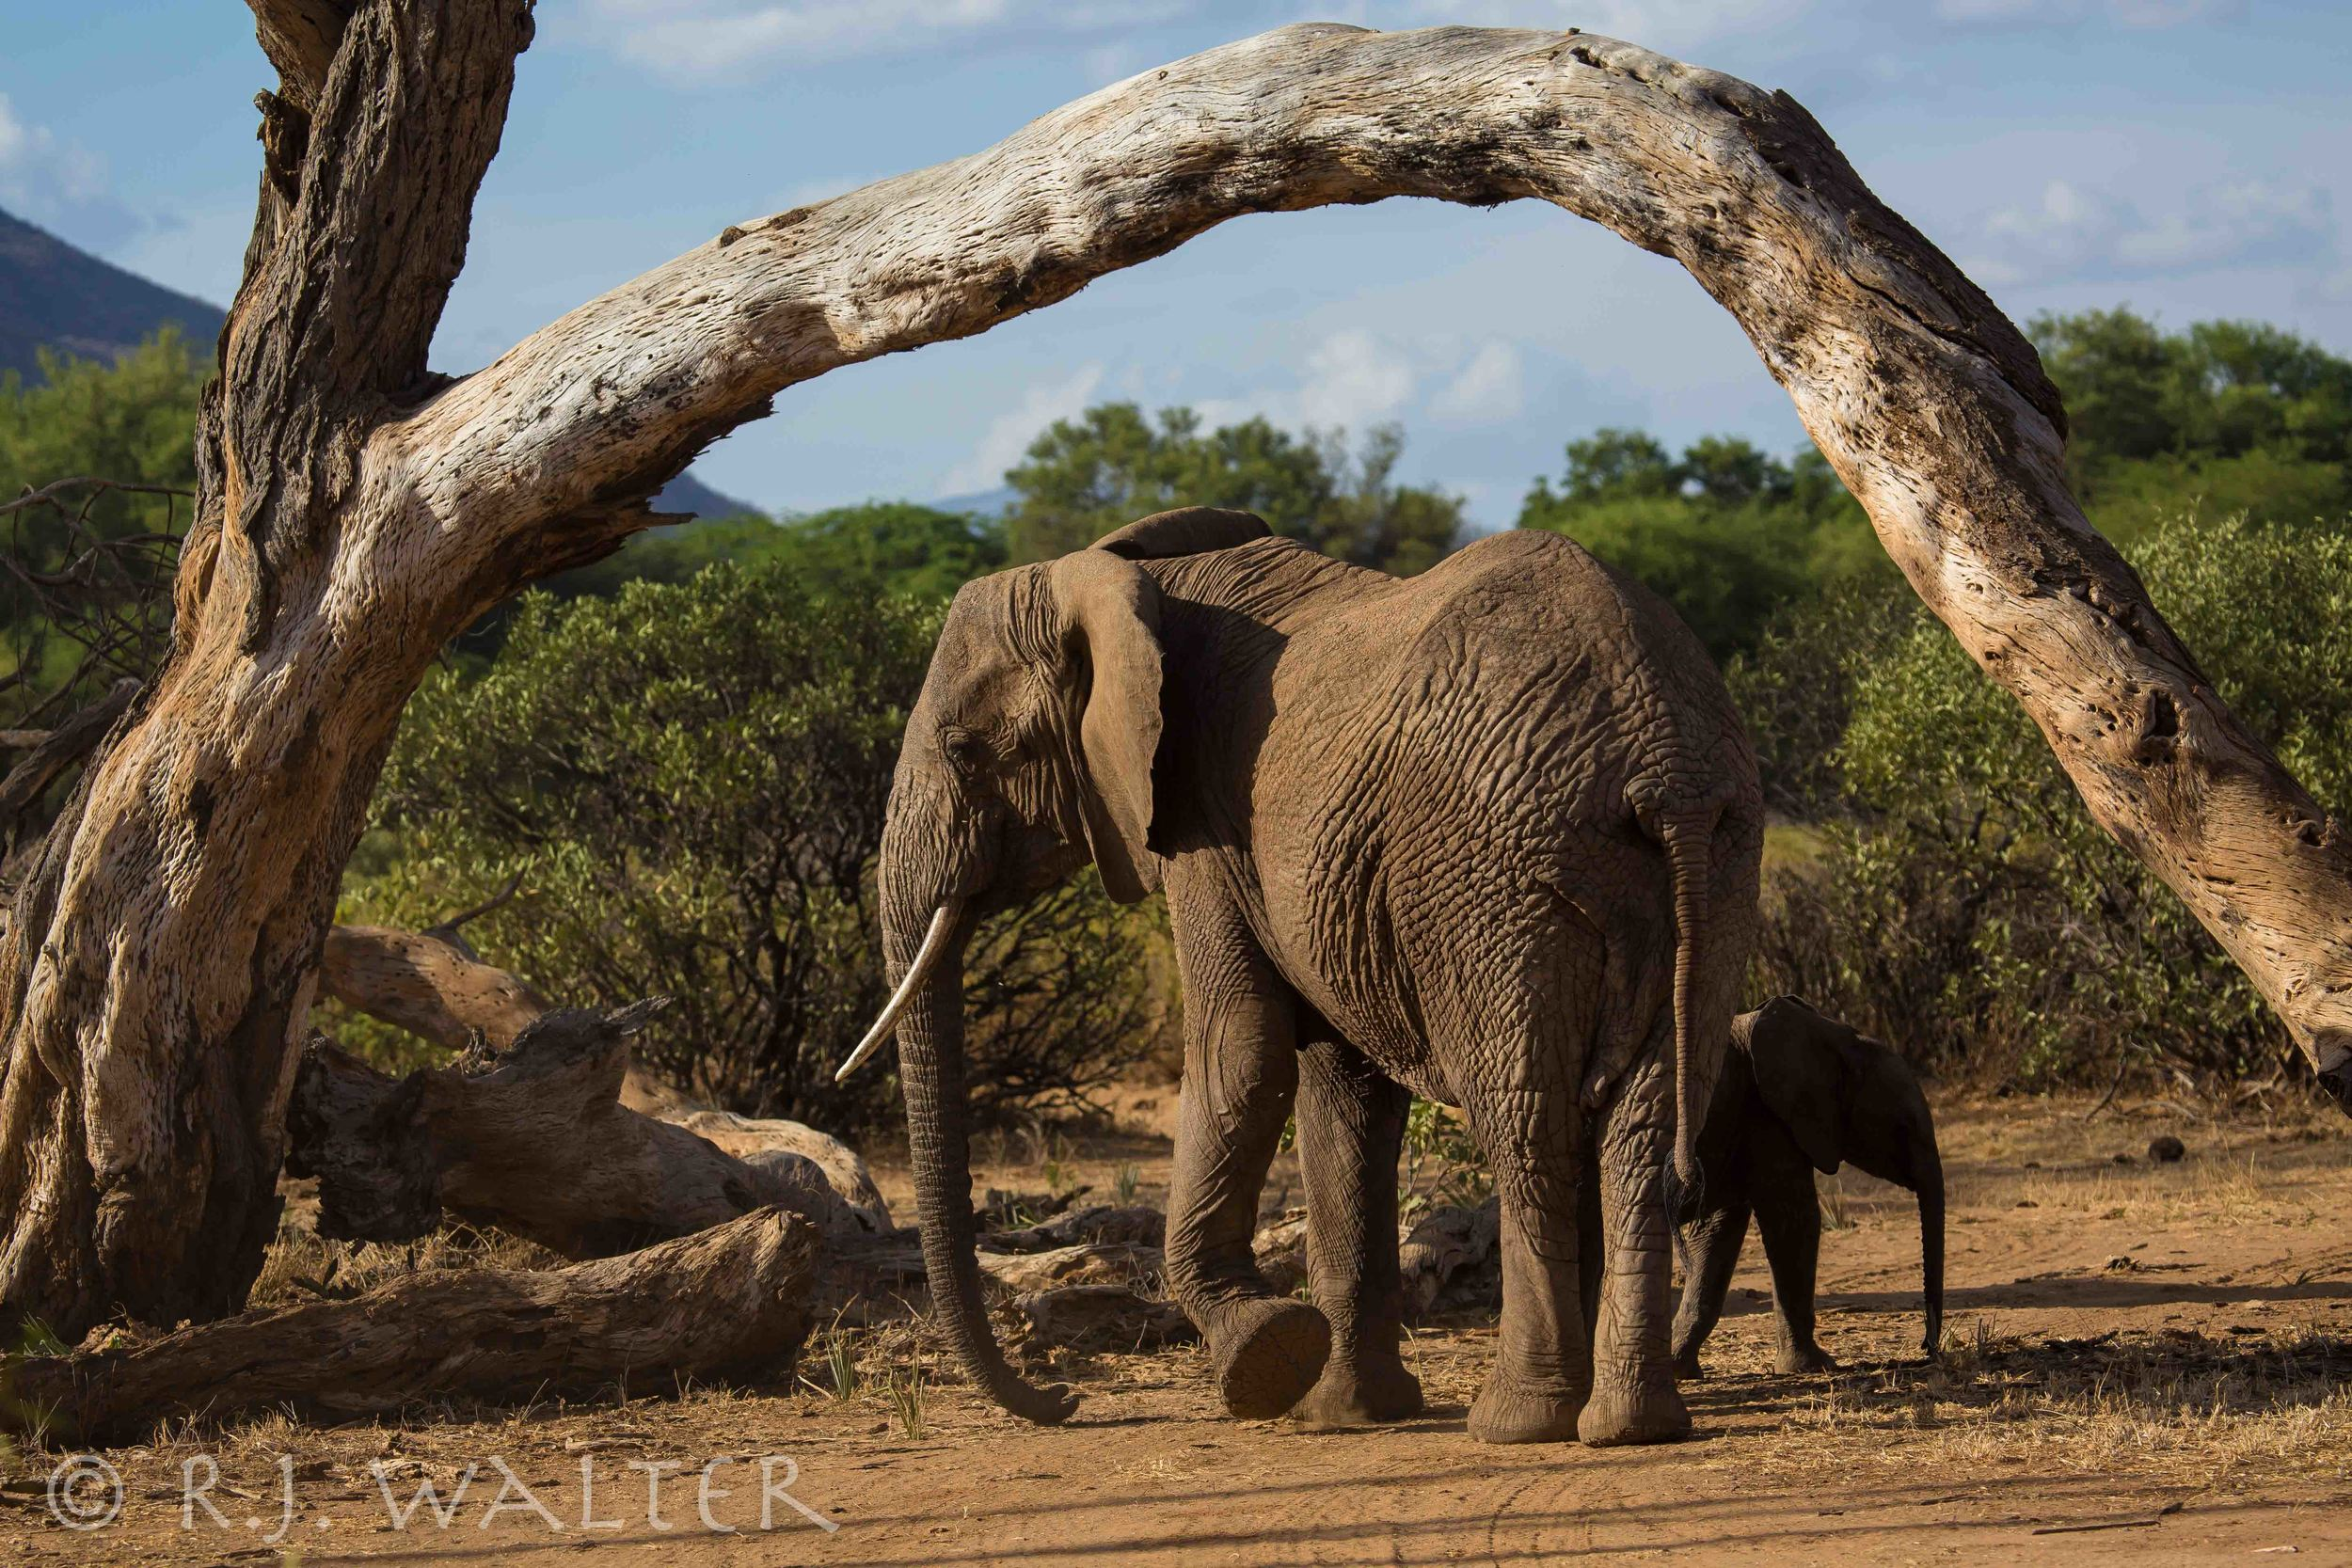 RJWalter_Save The Elephants_Samburu, Kenya_March 2015-7982.jpg